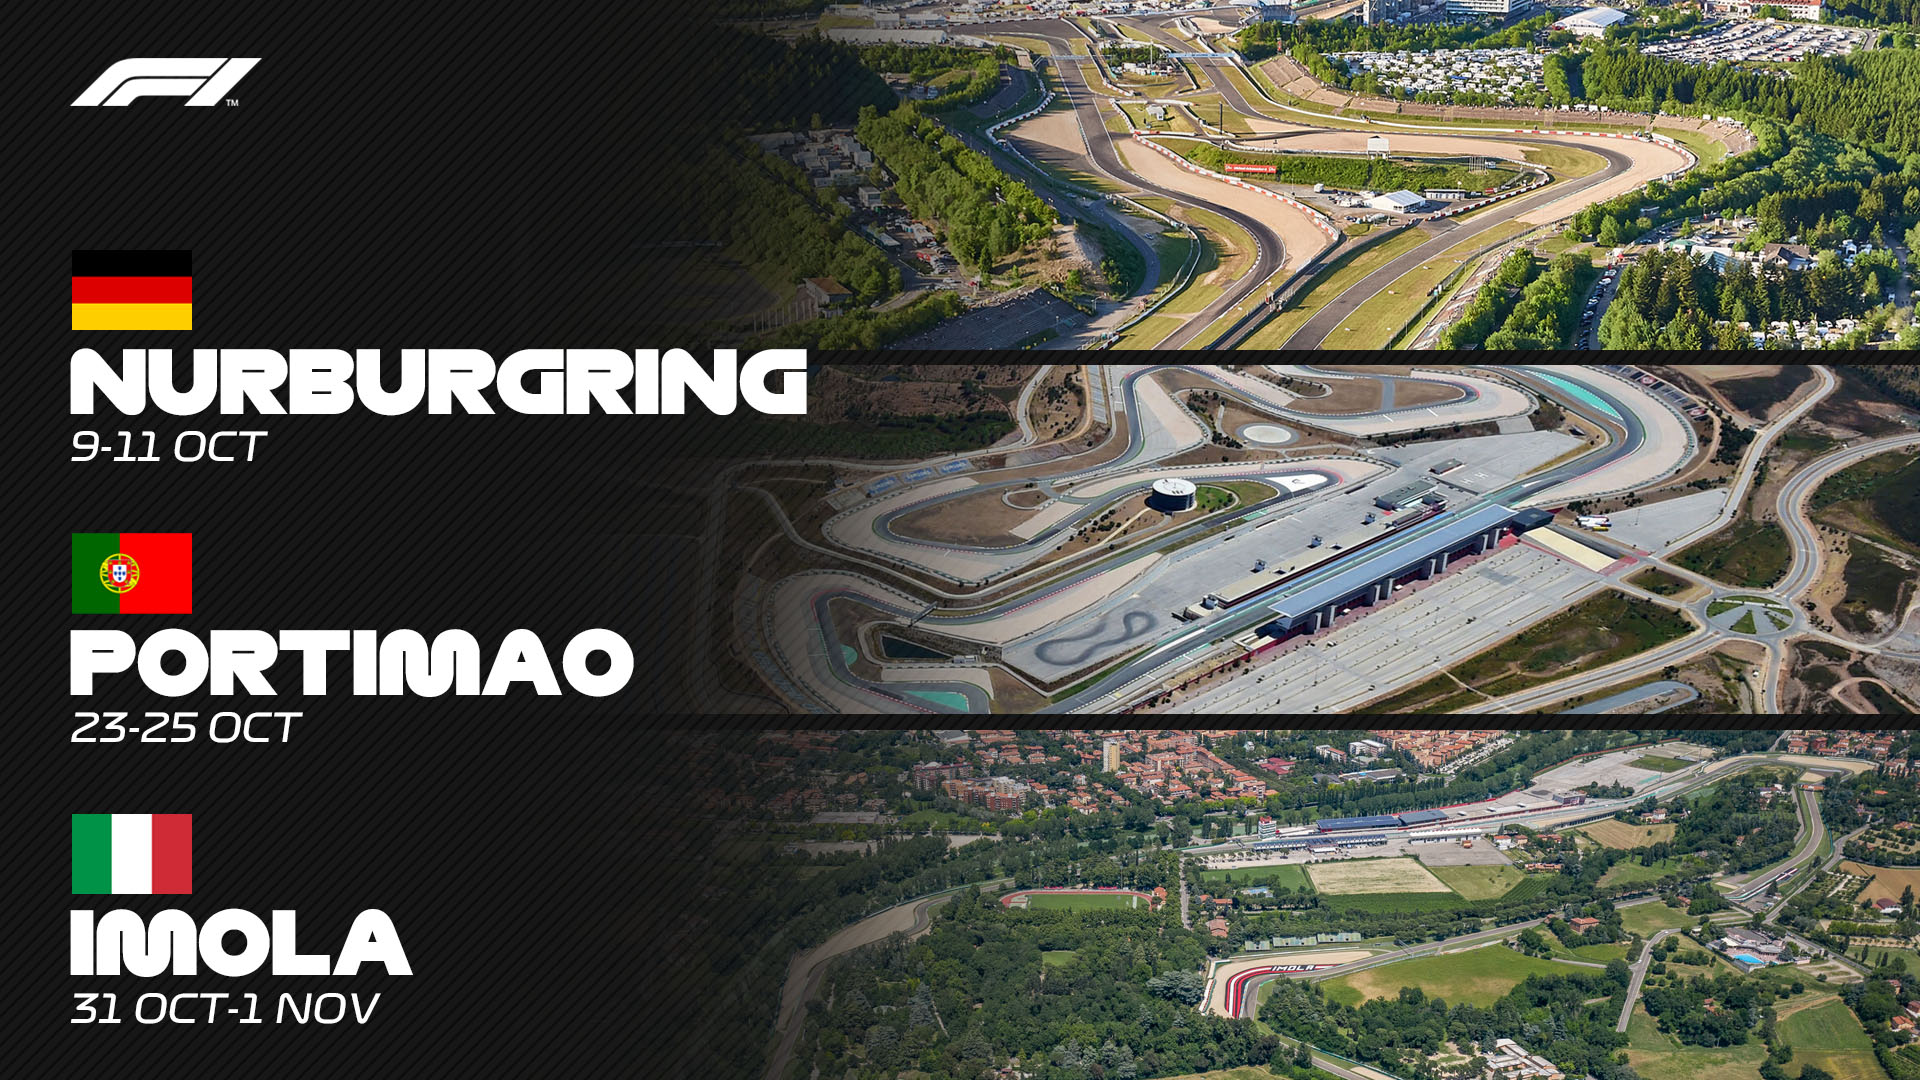 Formula 1 Adds Portimao Nurburgring And 2 Day Event In Imola To 2020 Race Calendar Formula 1